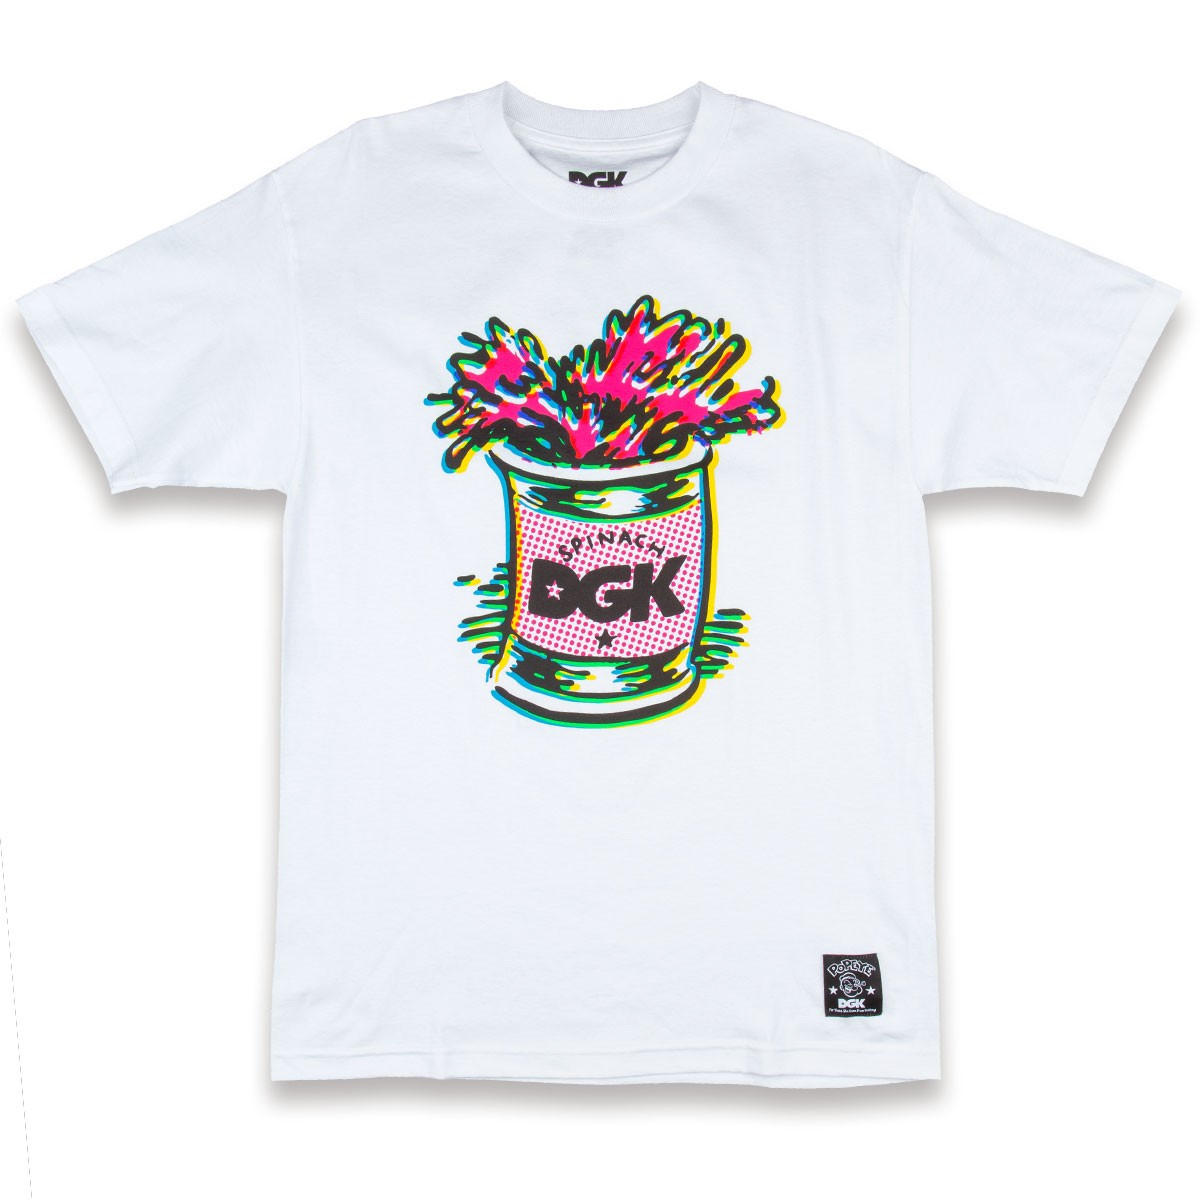 dgk x popeye spinach t shirt white. Black Bedroom Furniture Sets. Home Design Ideas